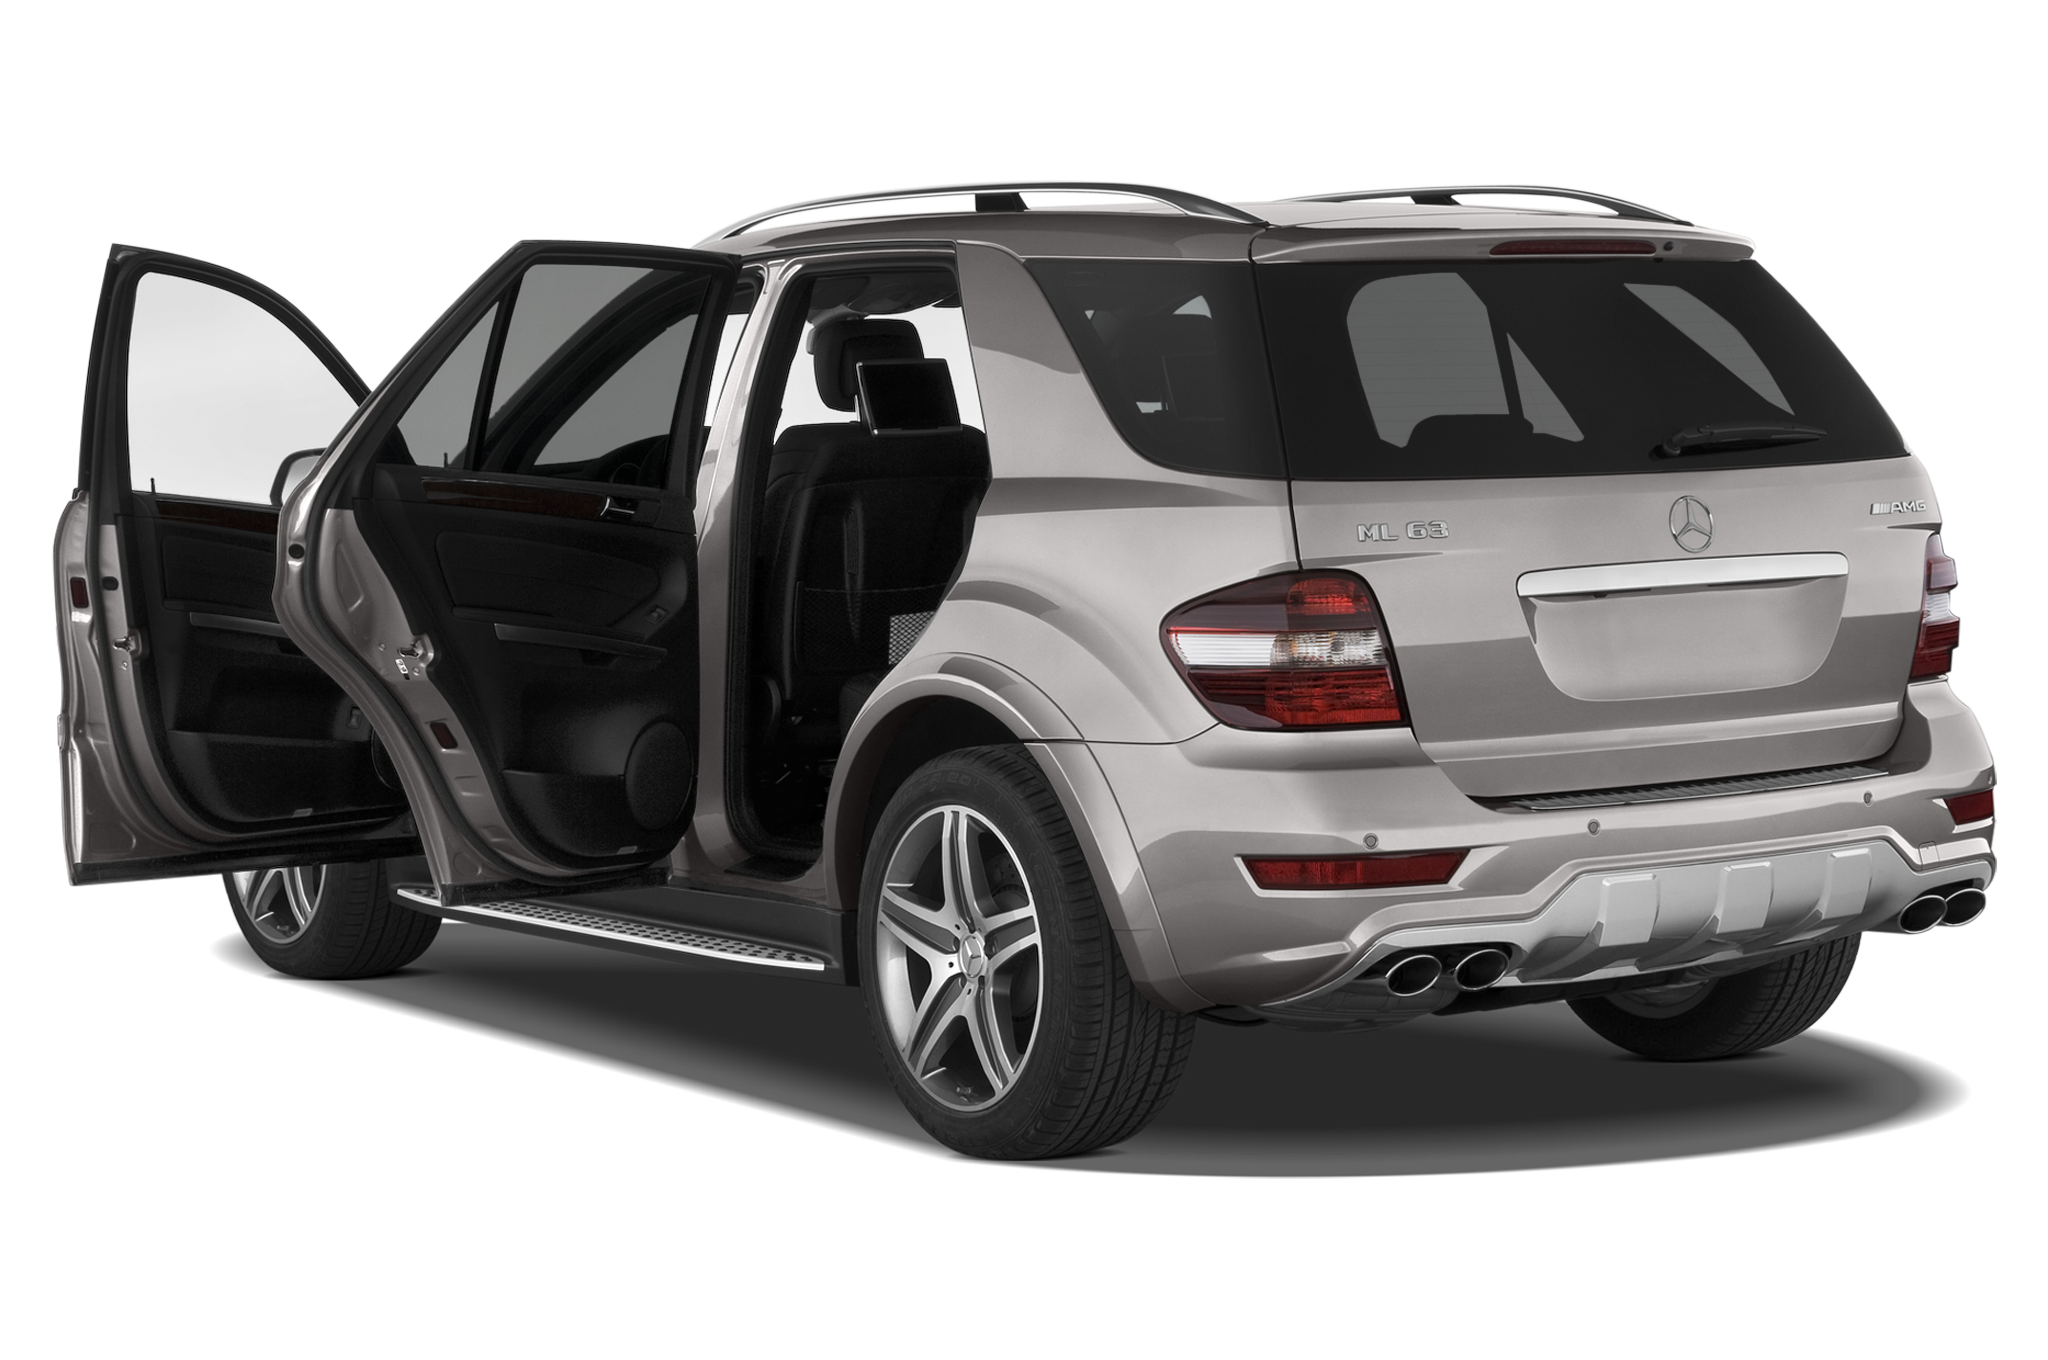 2011 mercedes benz ml63 amg editor 39 s notebook. Black Bedroom Furniture Sets. Home Design Ideas